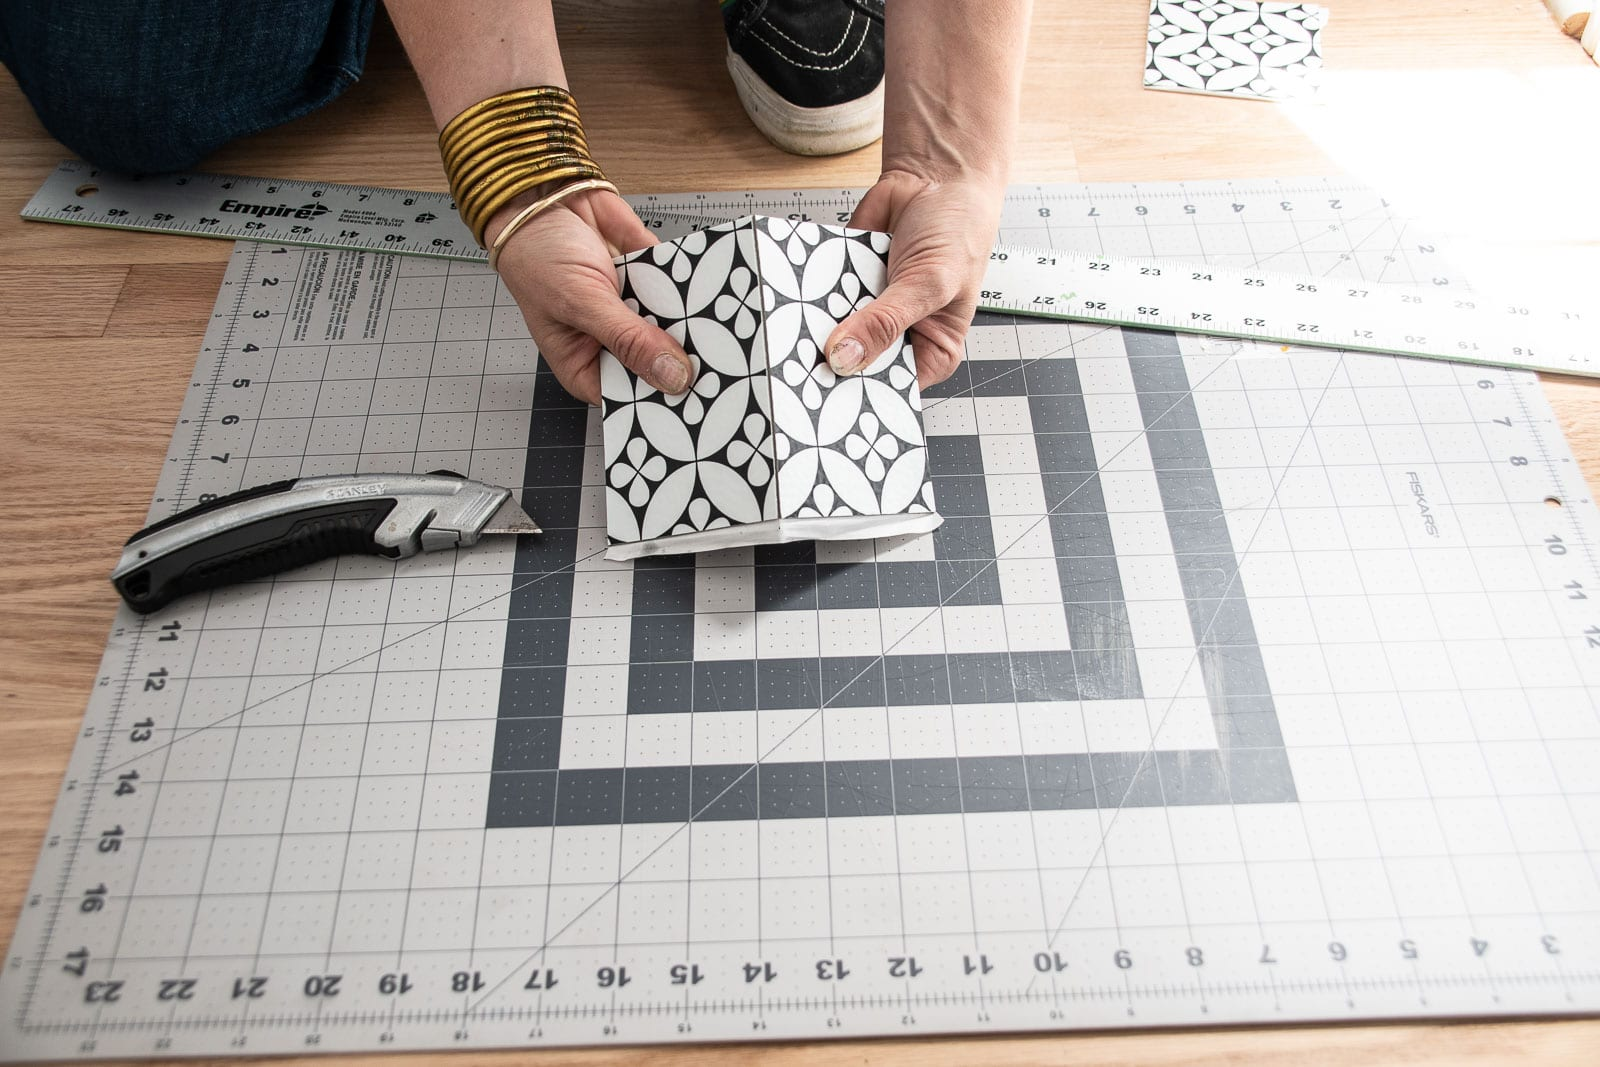 cutting the adhesive tile